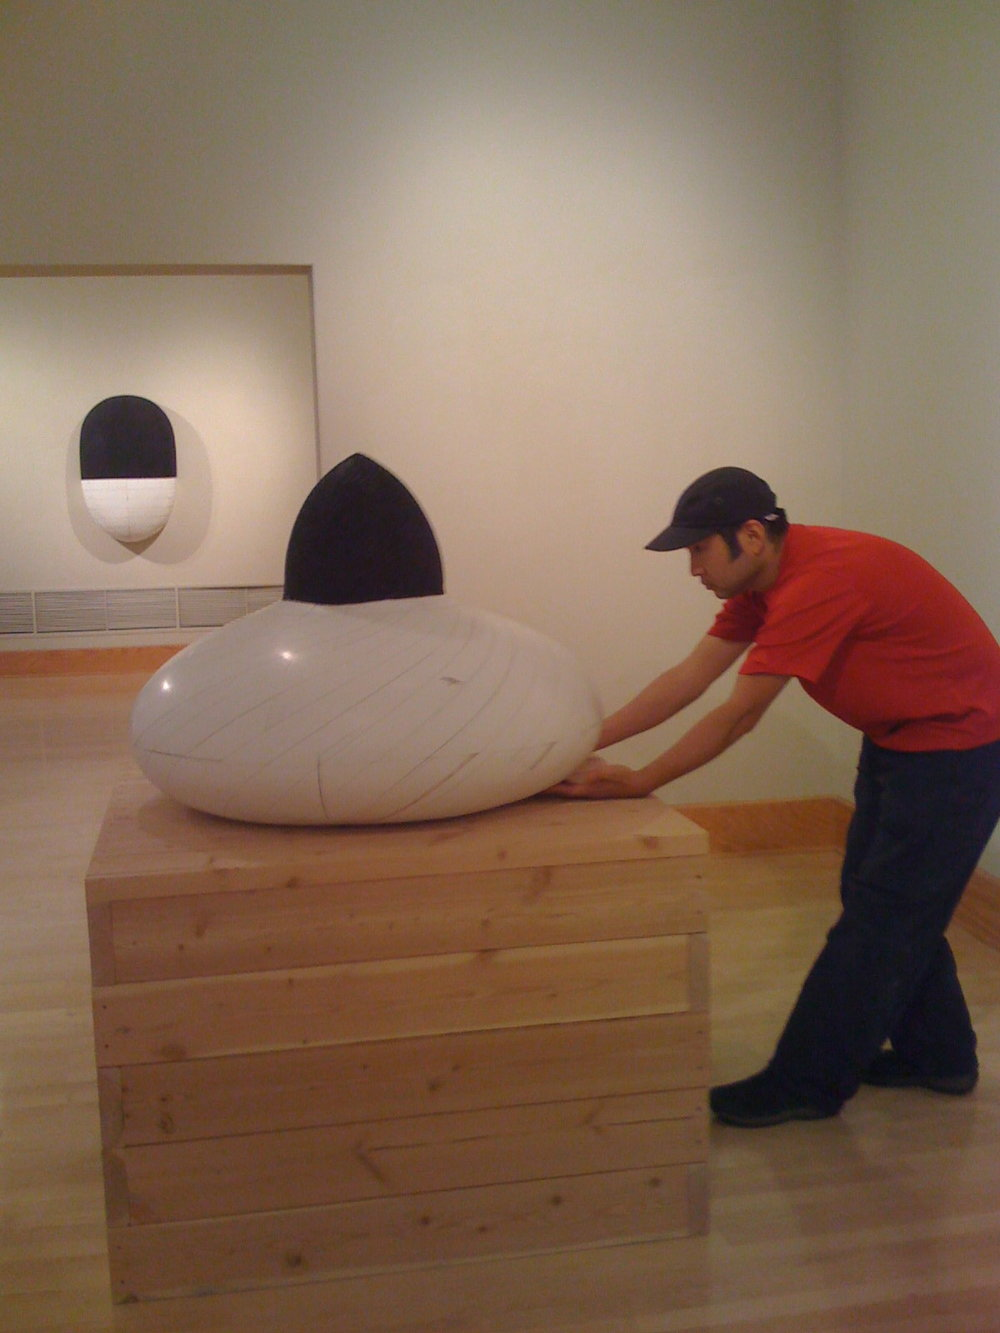 Hiroyuki Hamada installing his sculpture in the List Gallery, Swarthmore College